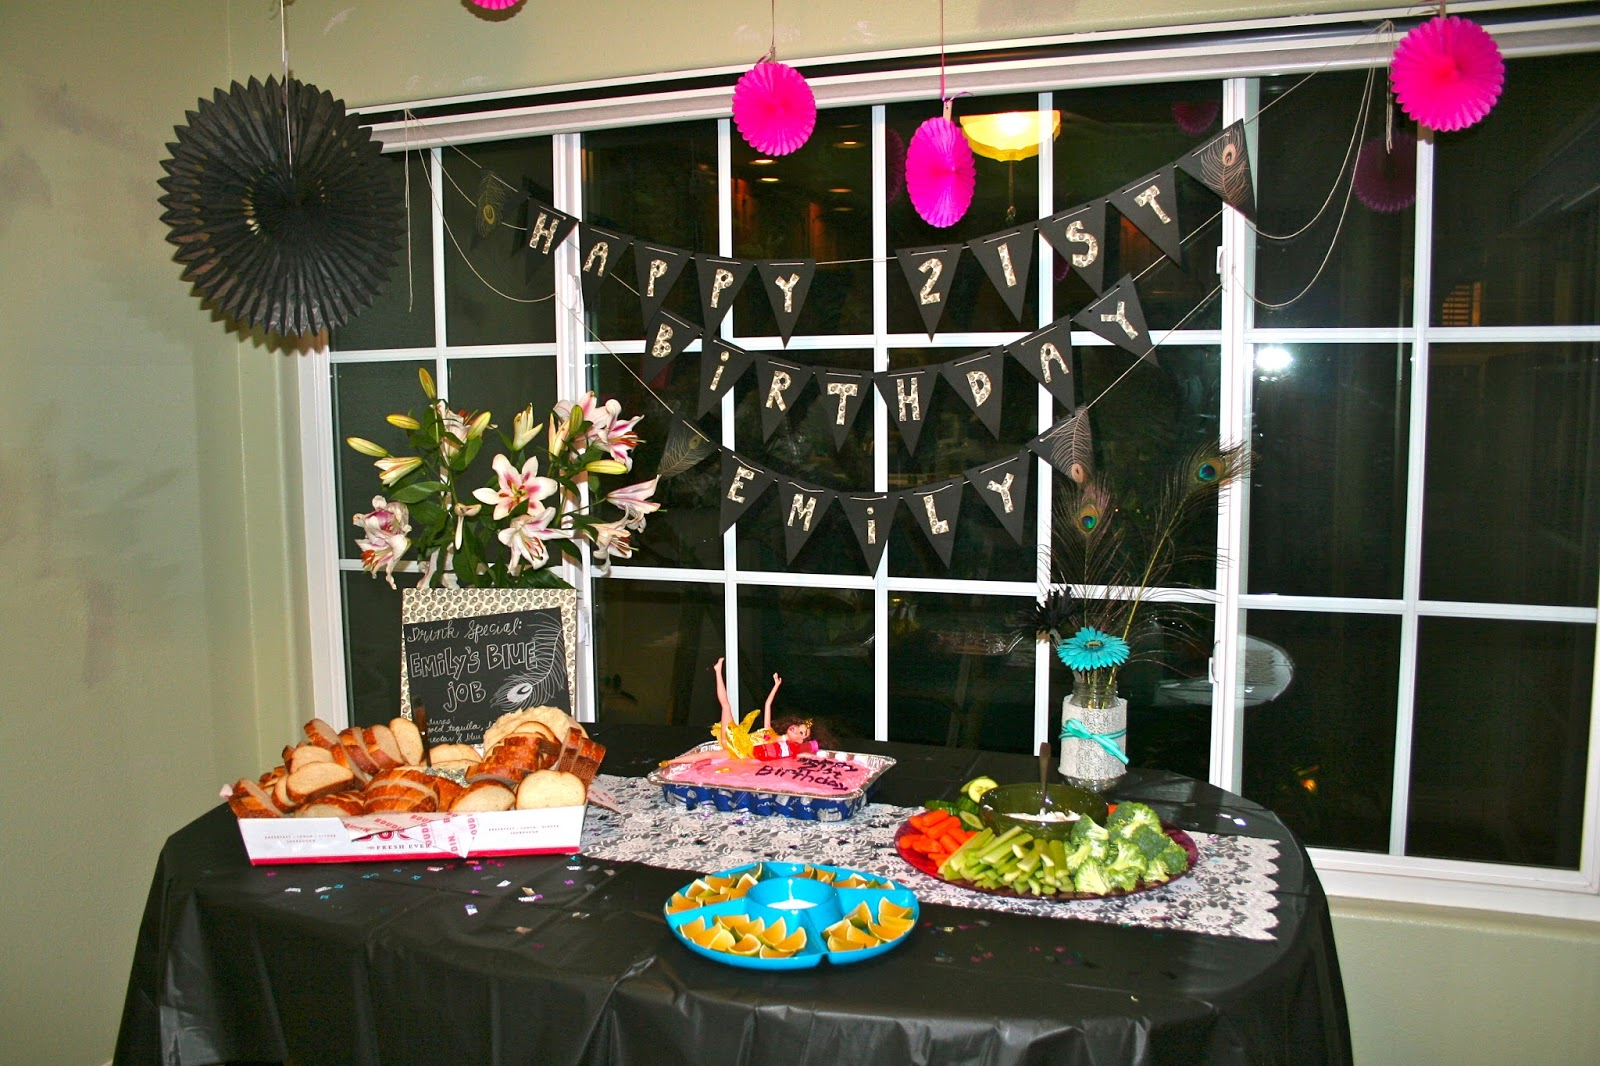 Champagne Taste Shoestring Budget 21st Birthday Party